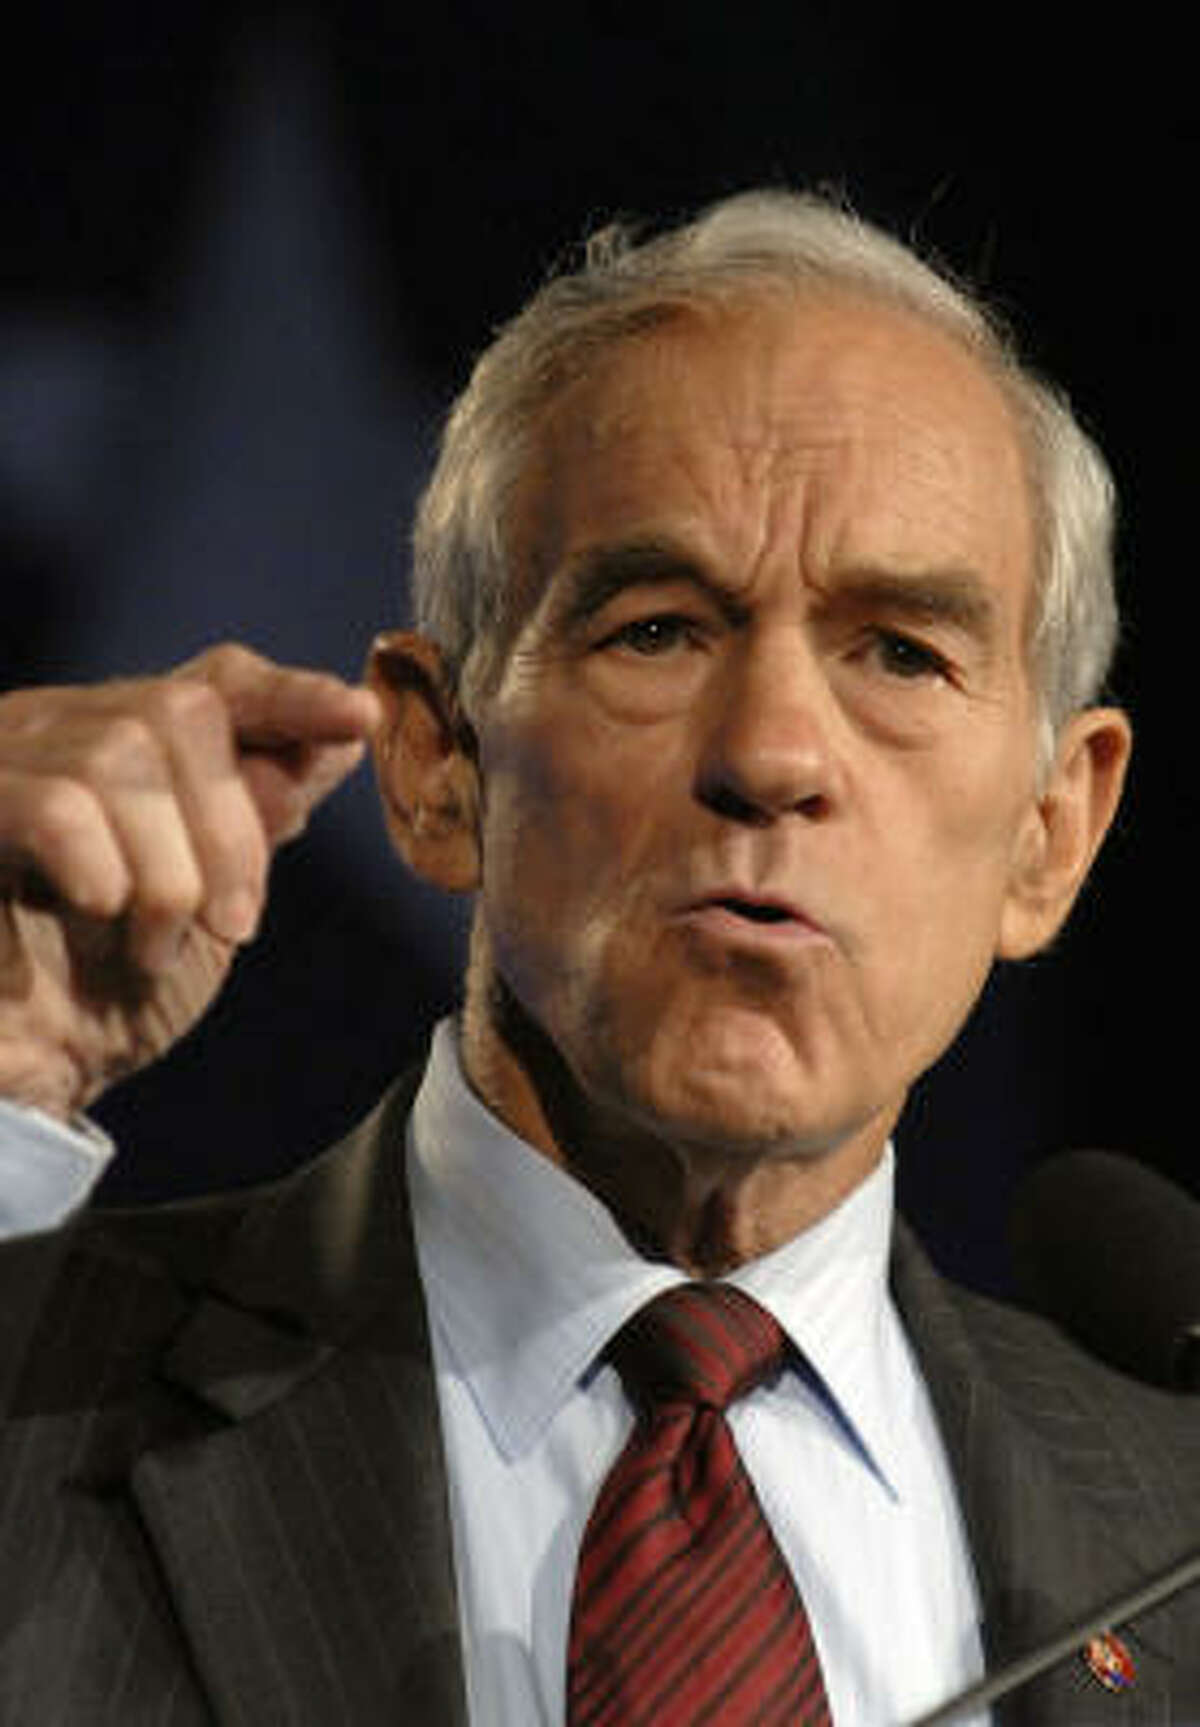 Rep. Ron Paul, R-Texas and GOP presidential candidate, collected a record $4.3 million in one day of Internet fundraising.